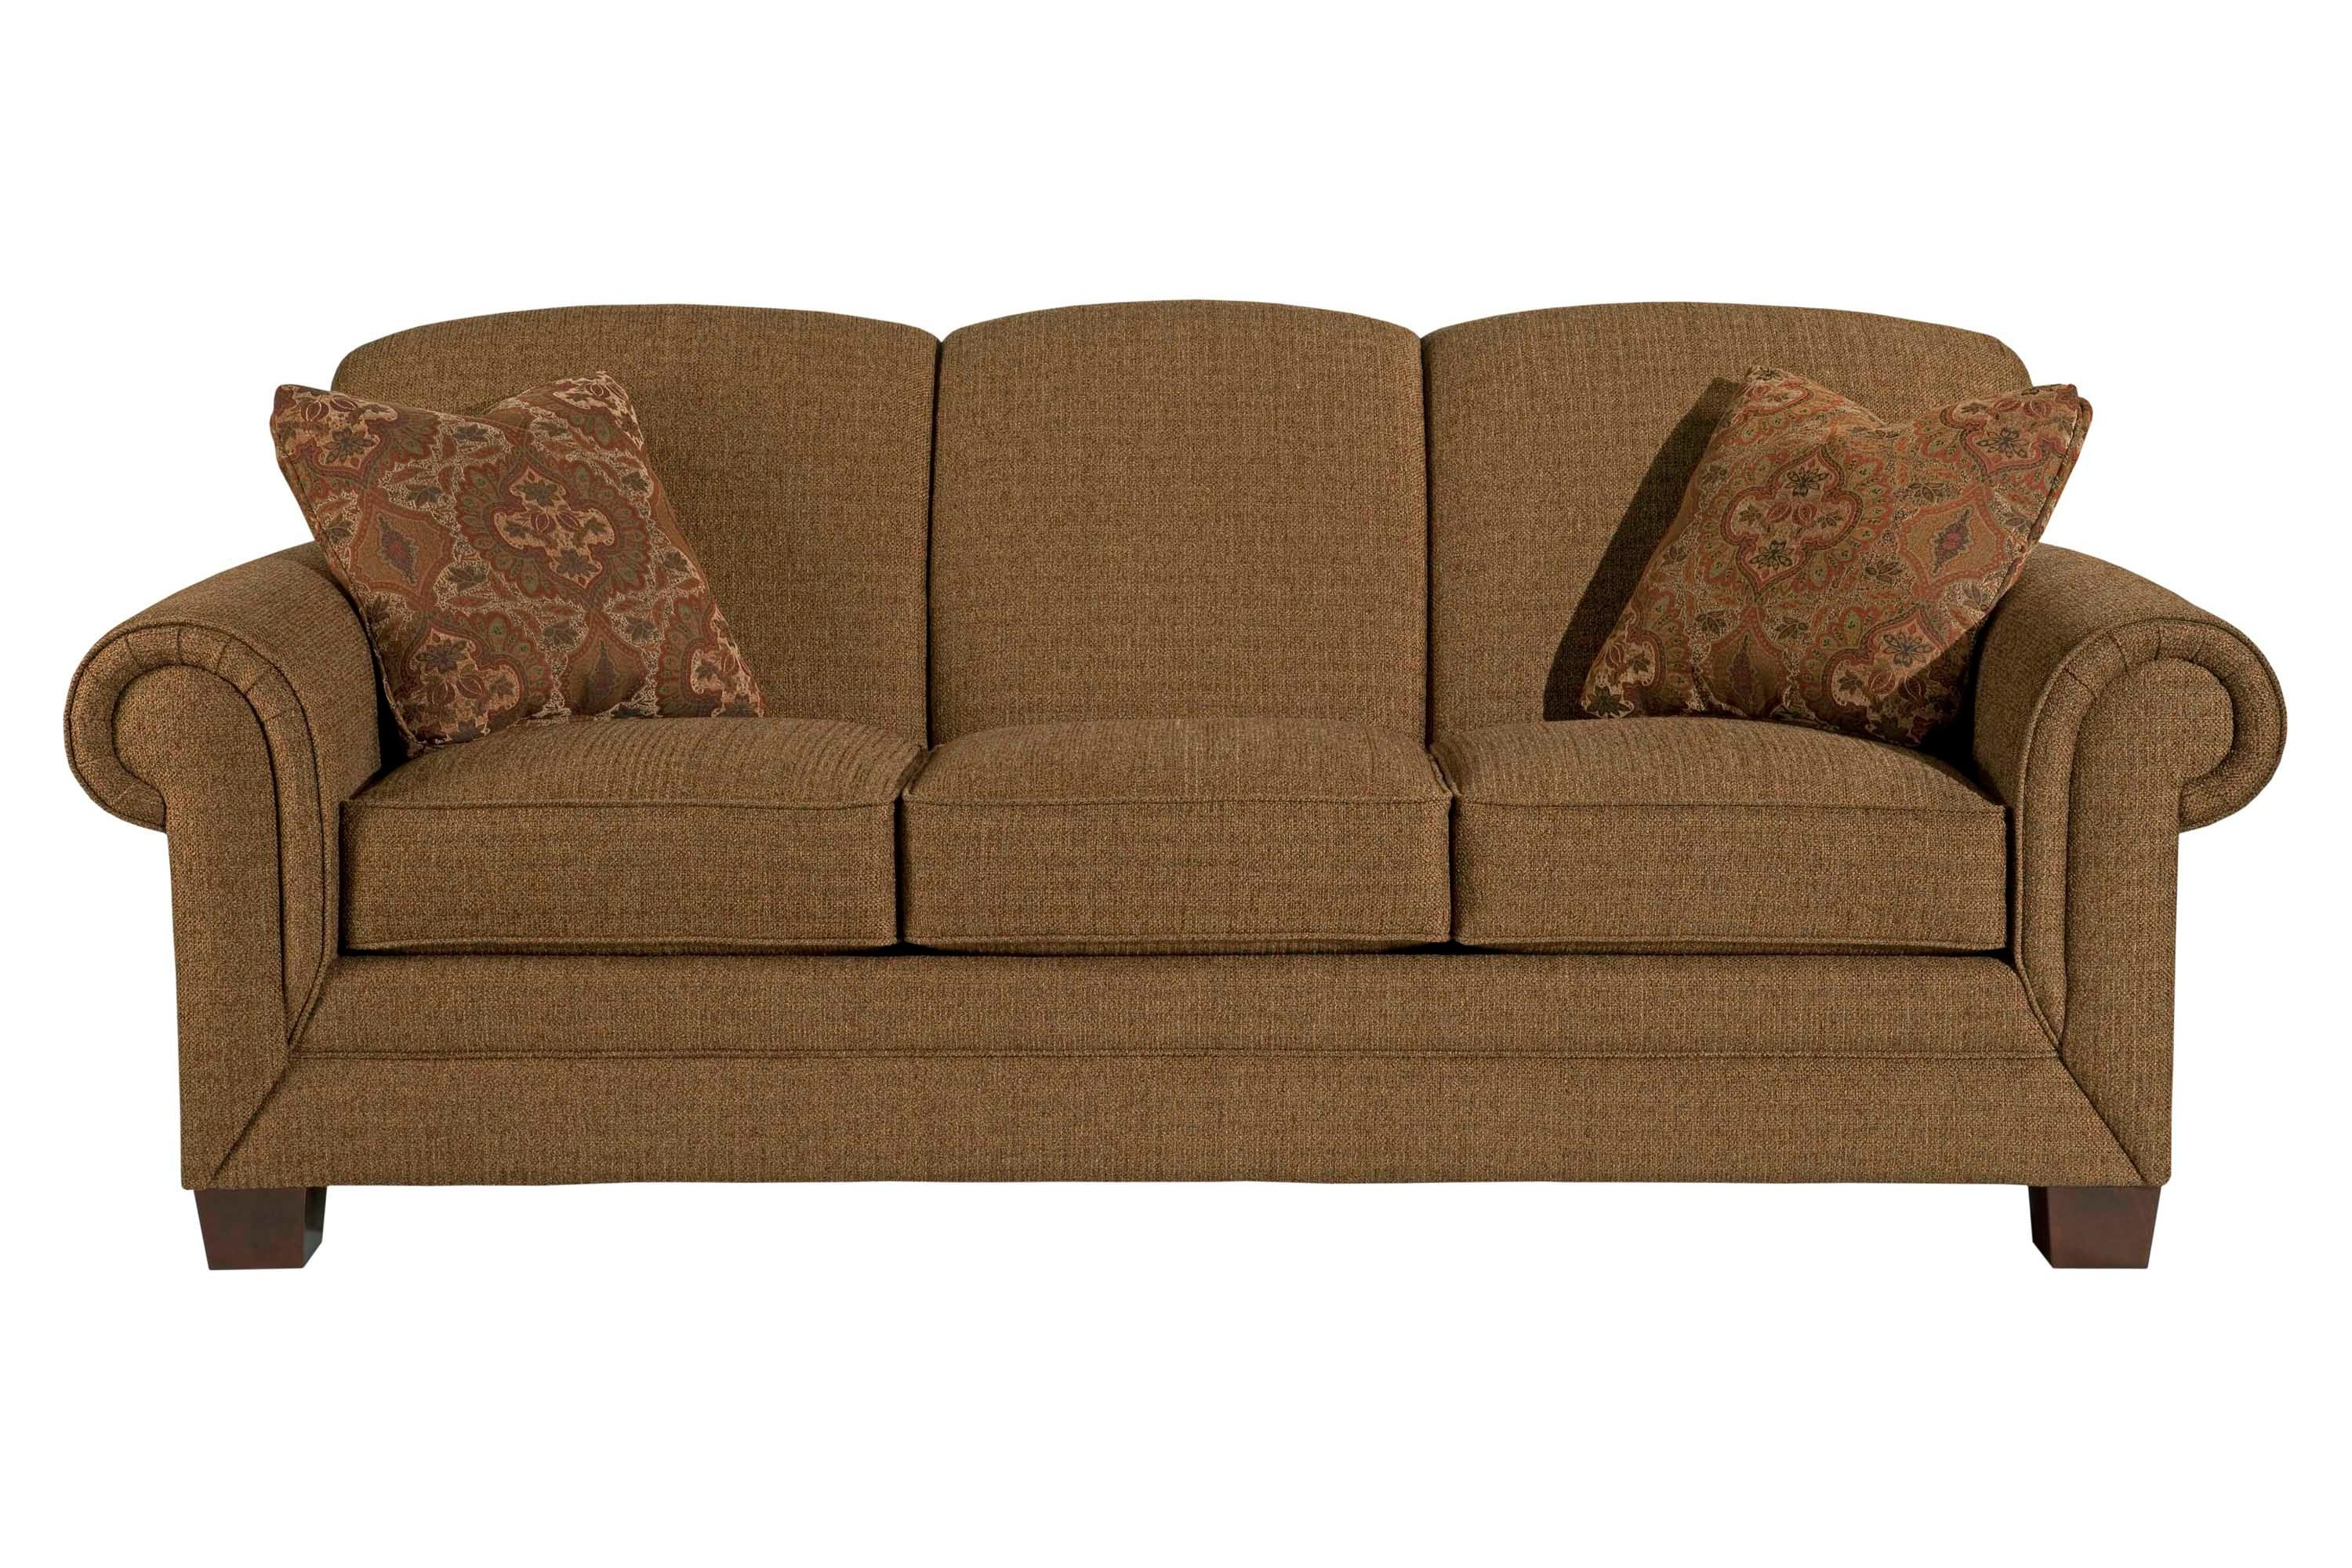 Ava Queen Air Dream Sofa Sleeper By Broyhill Furniture